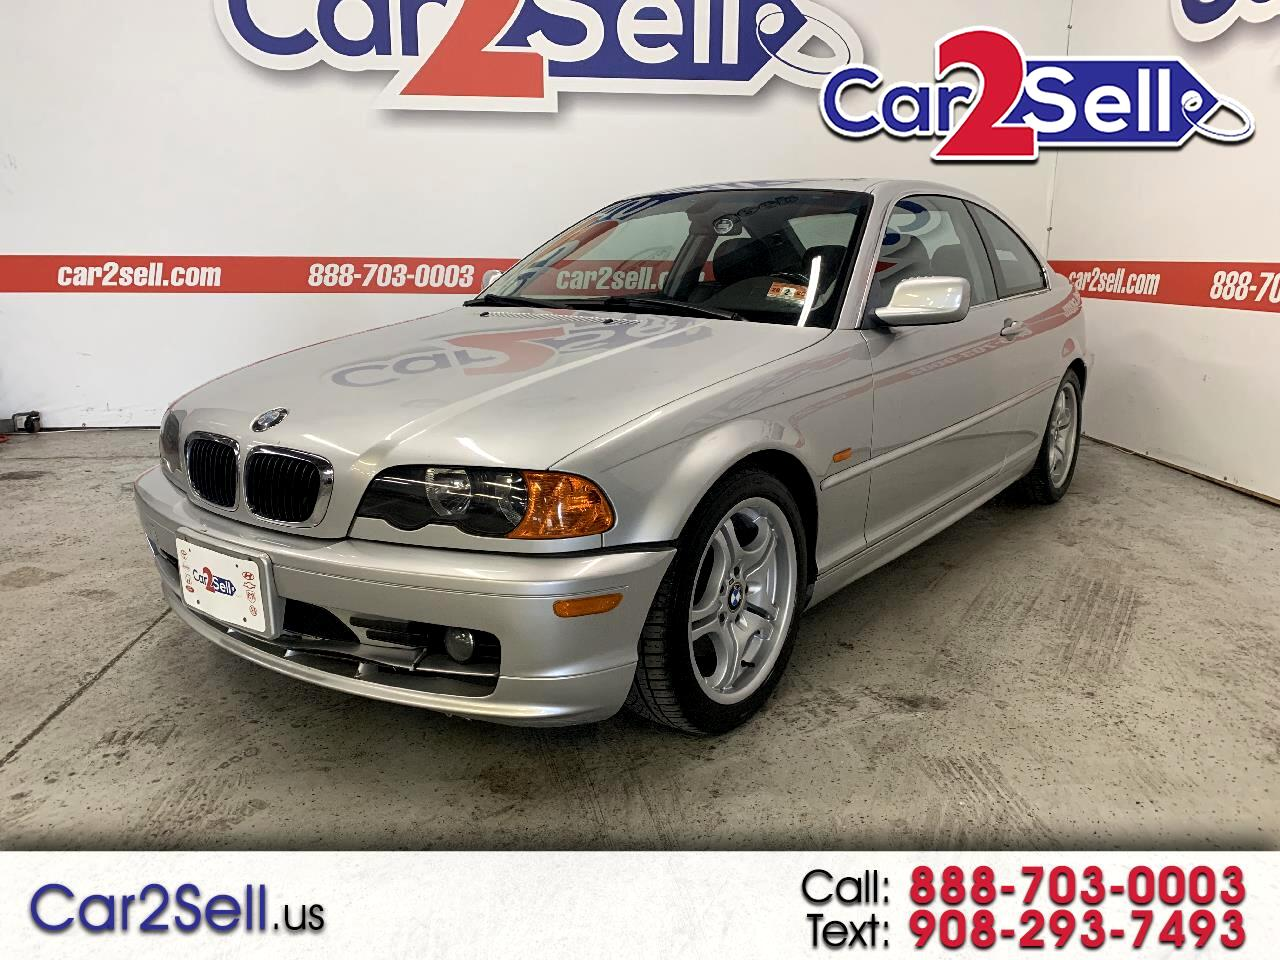 2003 BMW 3 Series 325Ci 2dr Cpe